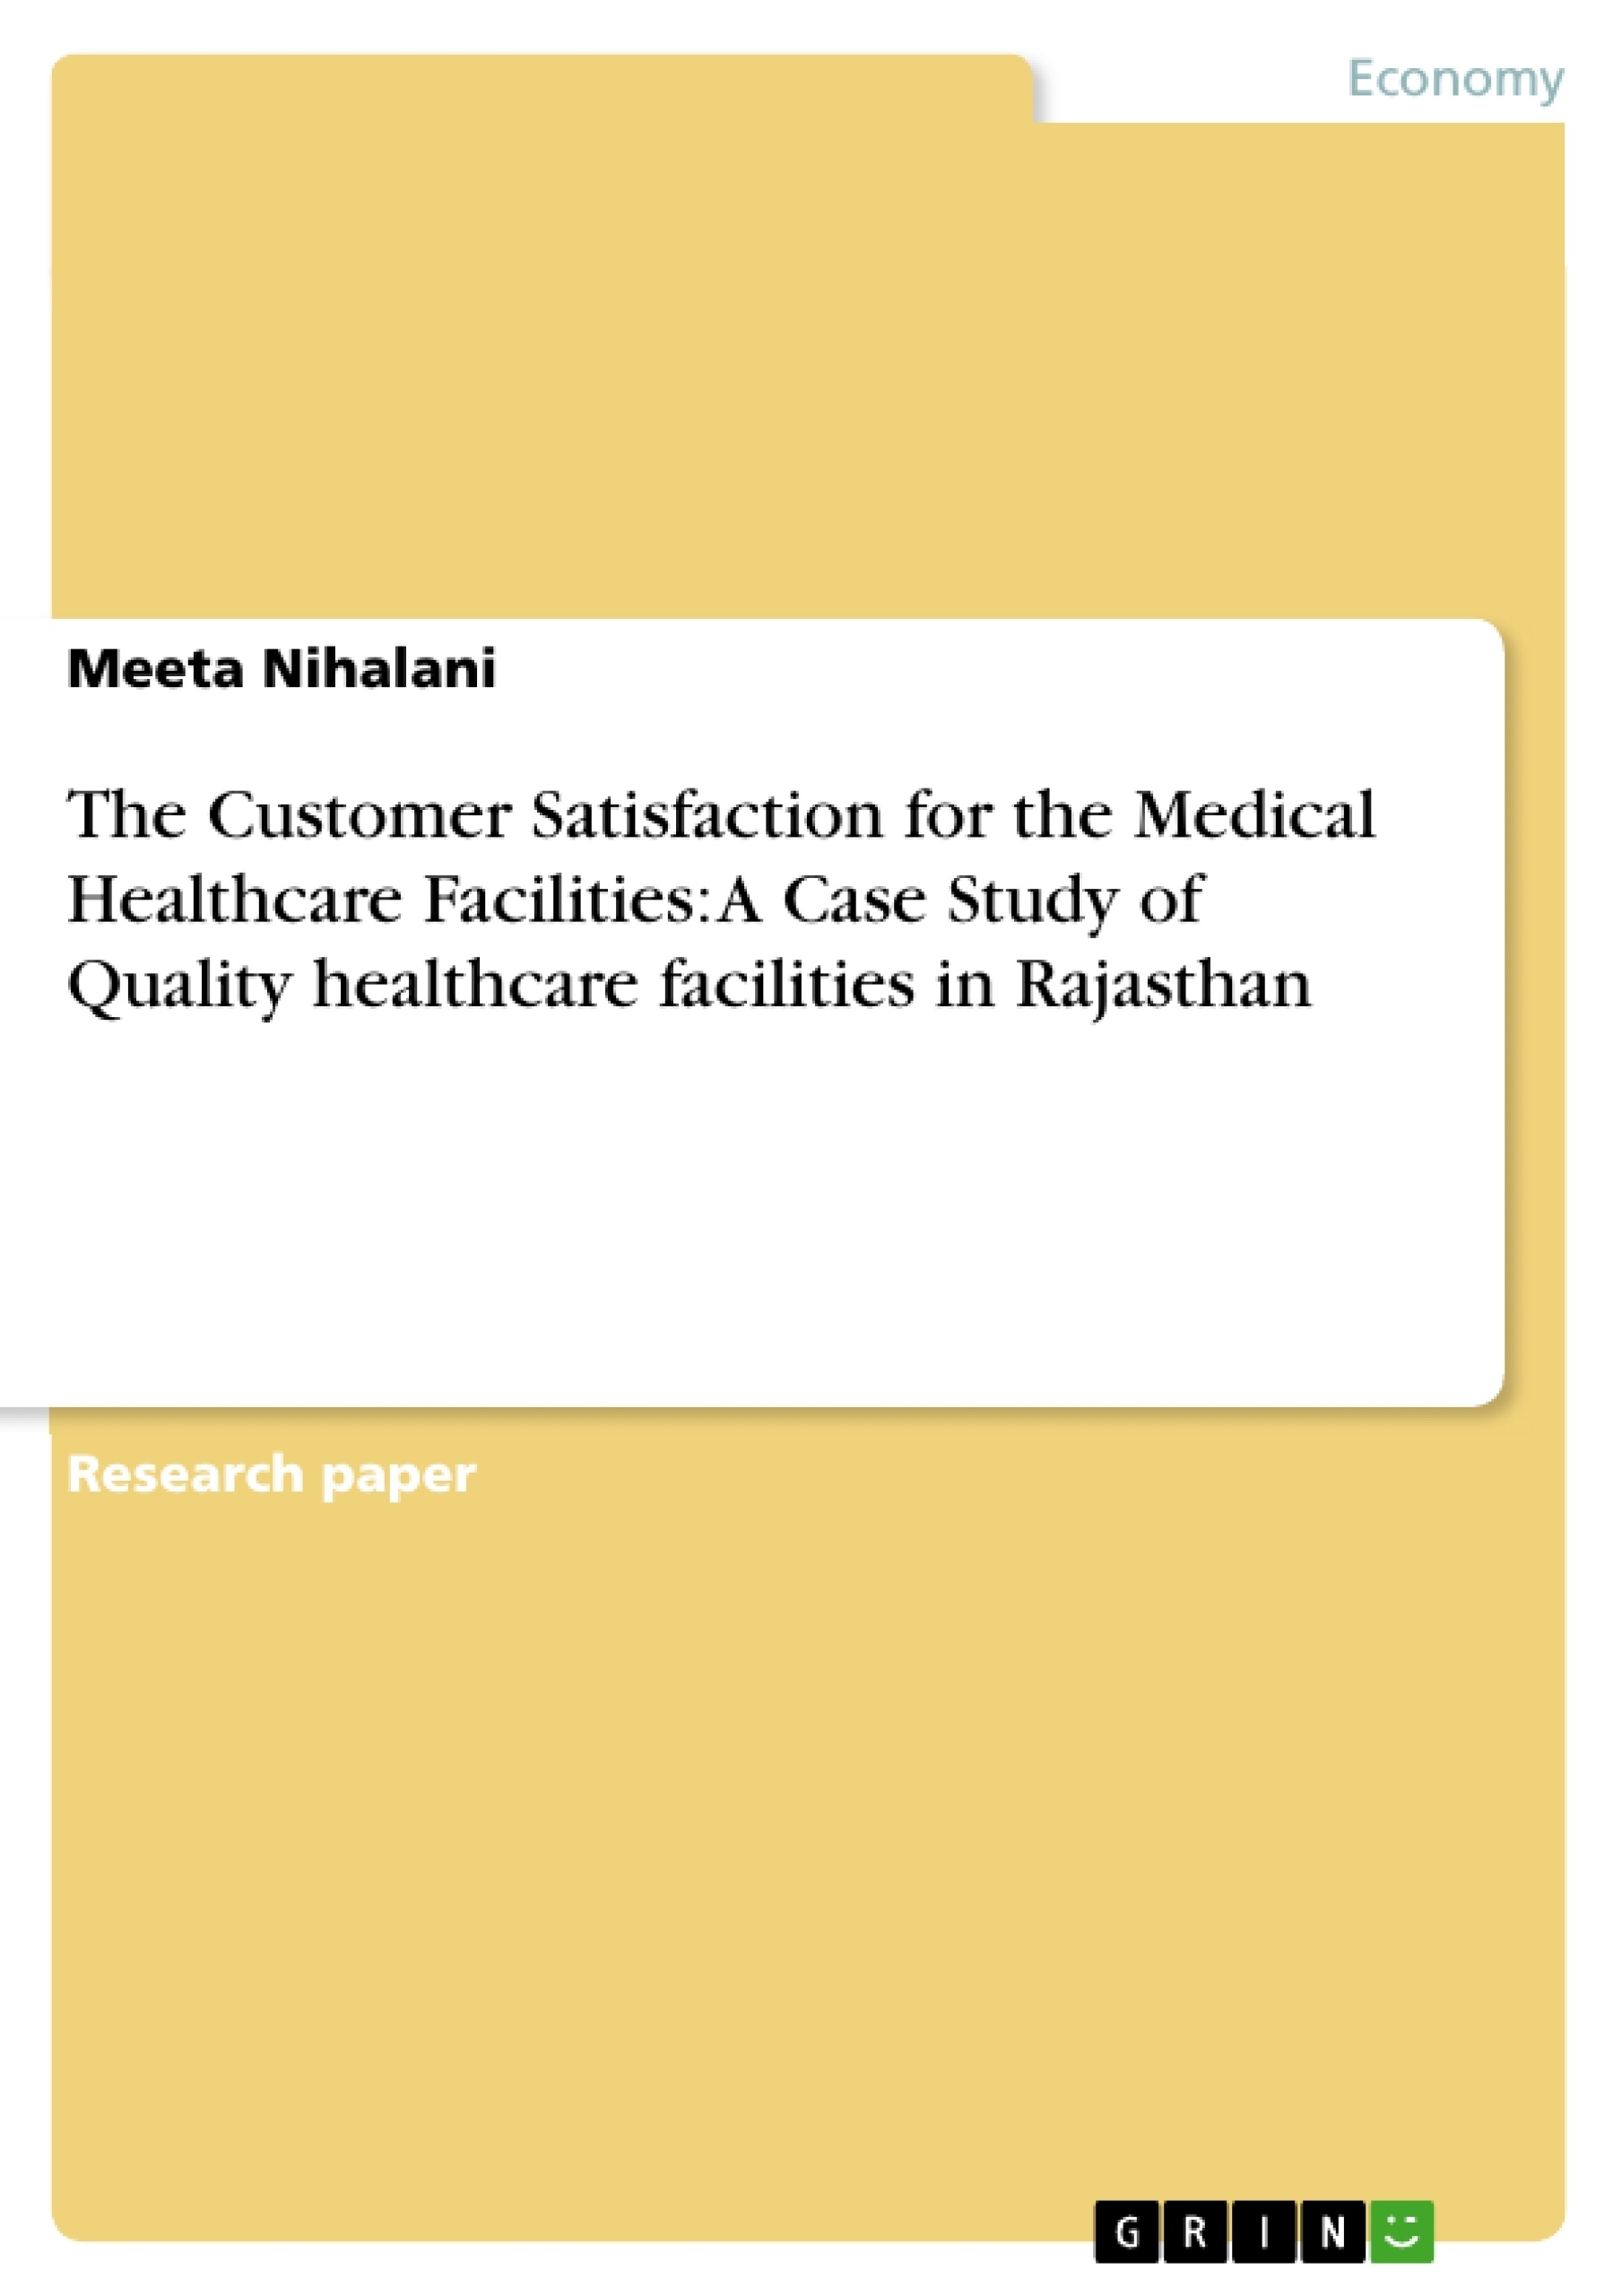 Title: The Customer Satisfaction for the Medical Healthcare Facilities: A Case Study of Quality healthcare facilities in Rajasthan